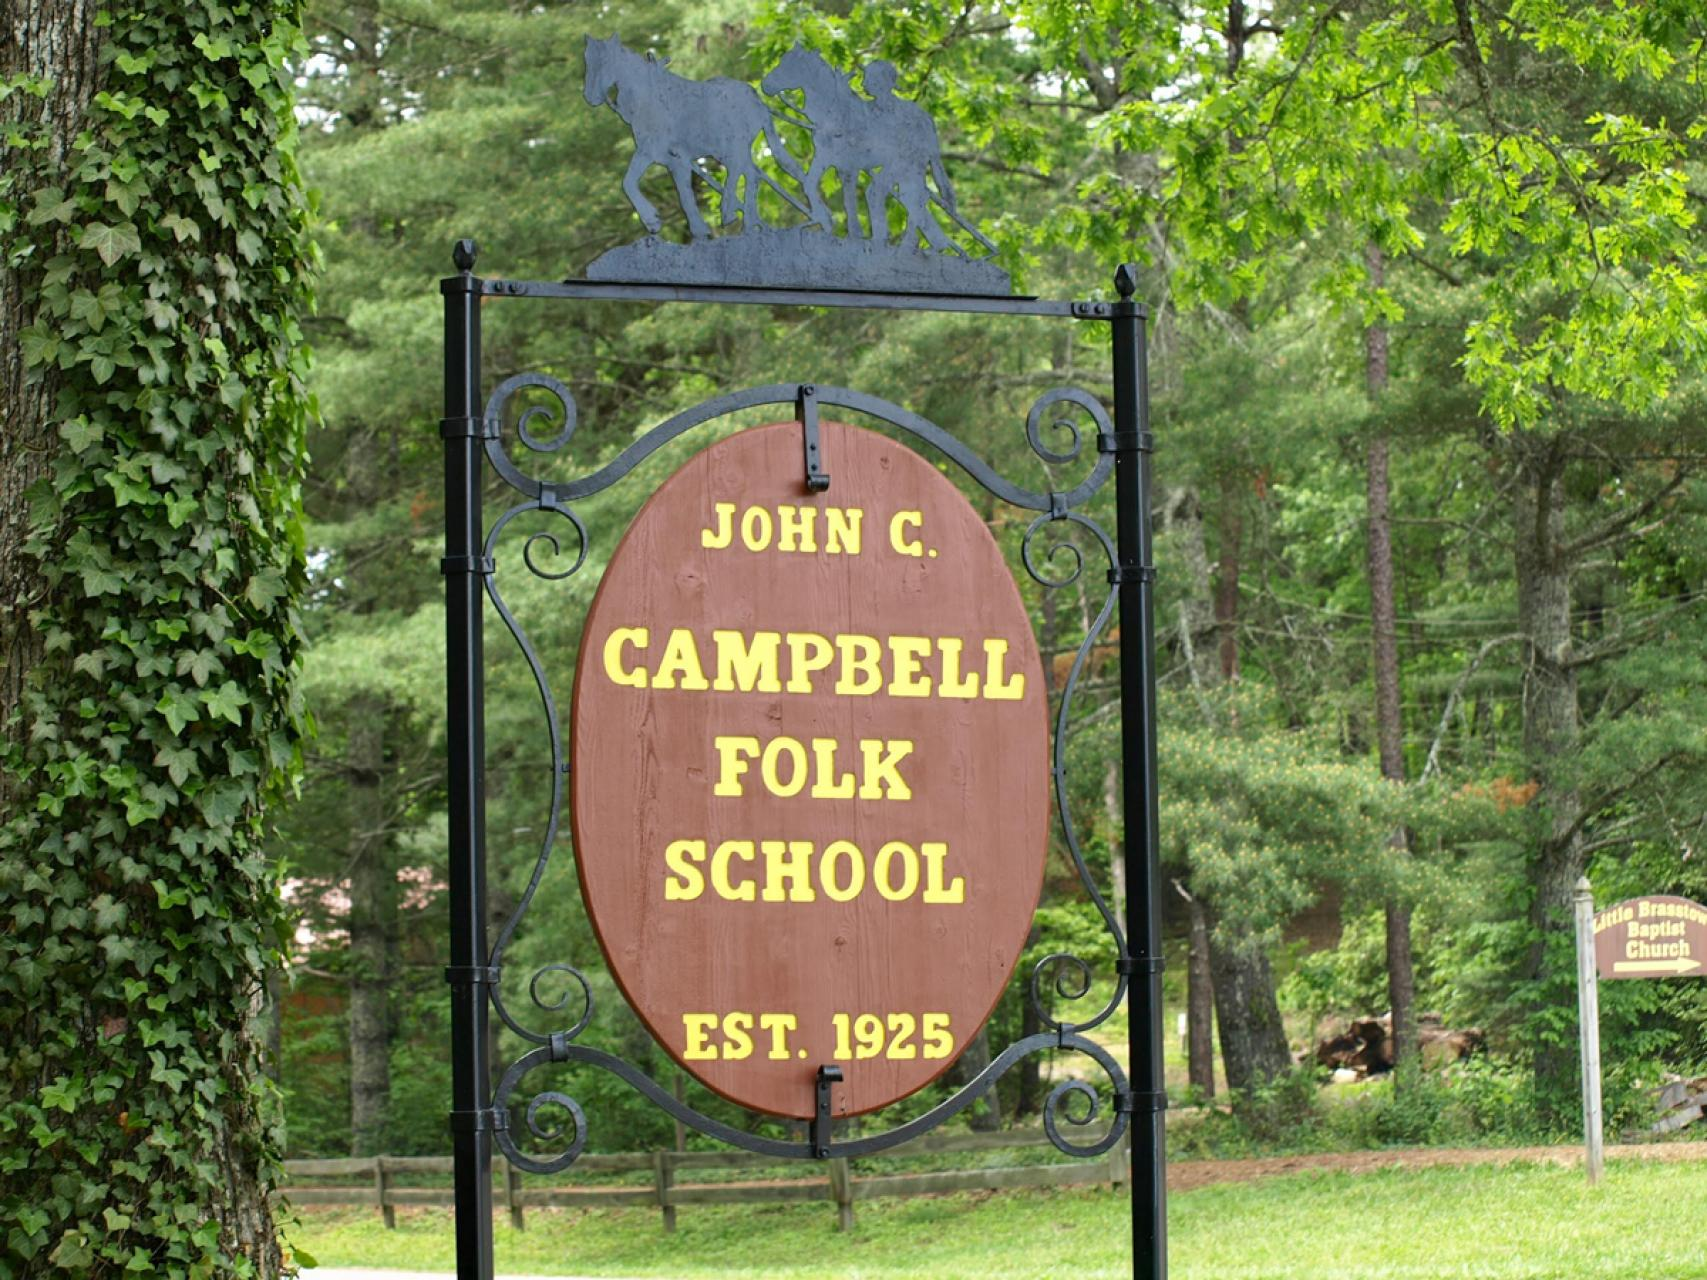 John C Campbell Folk School sign